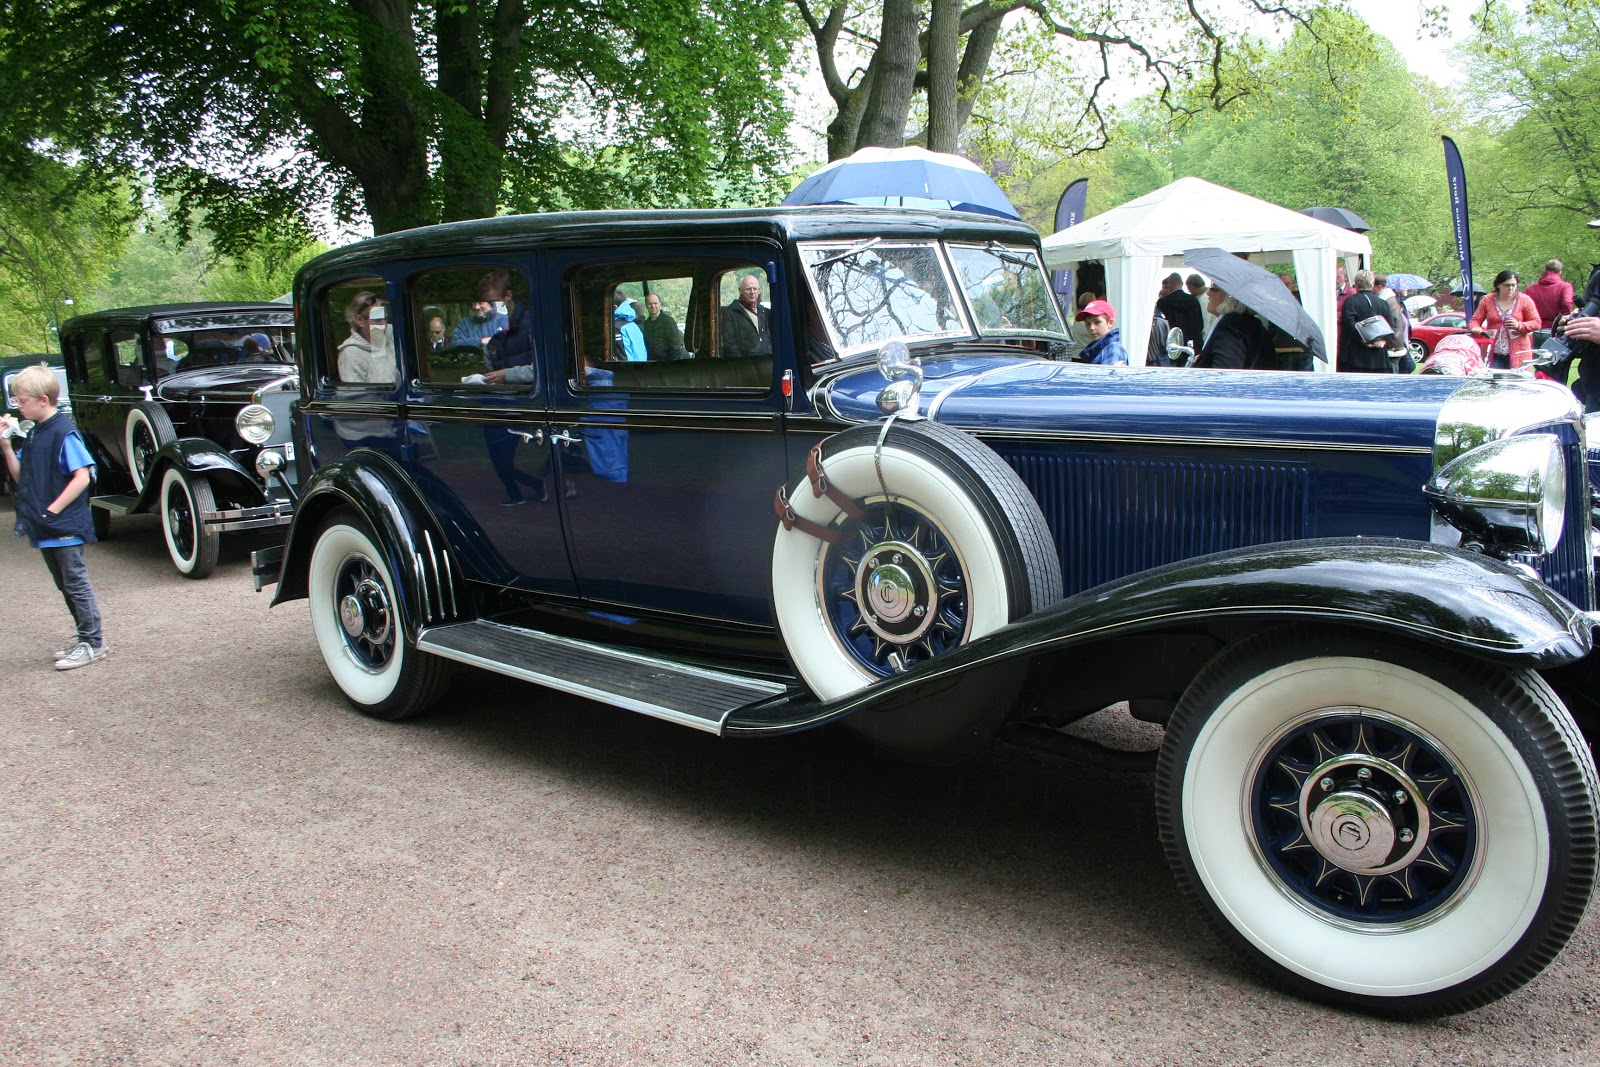 Gatsby Car: The Shoe AristoCat: The Great Gatsby Period Cars